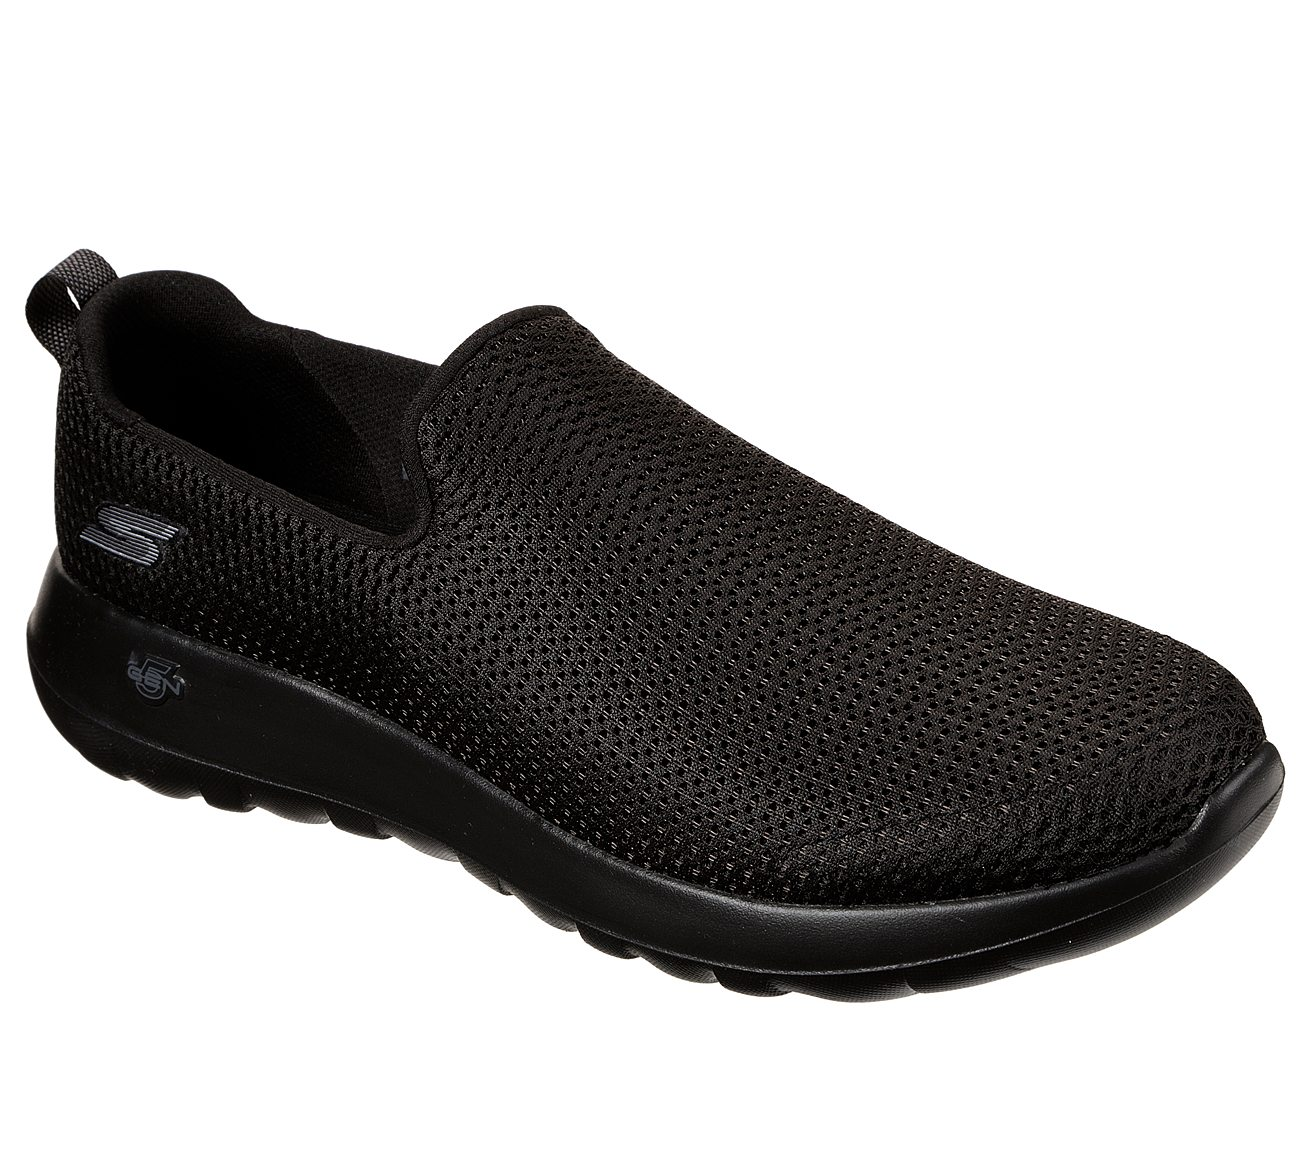 Buy SKECHERS Skechers GOwalk Max Skechers Performance Shoes only  60.00 ce2559bd14